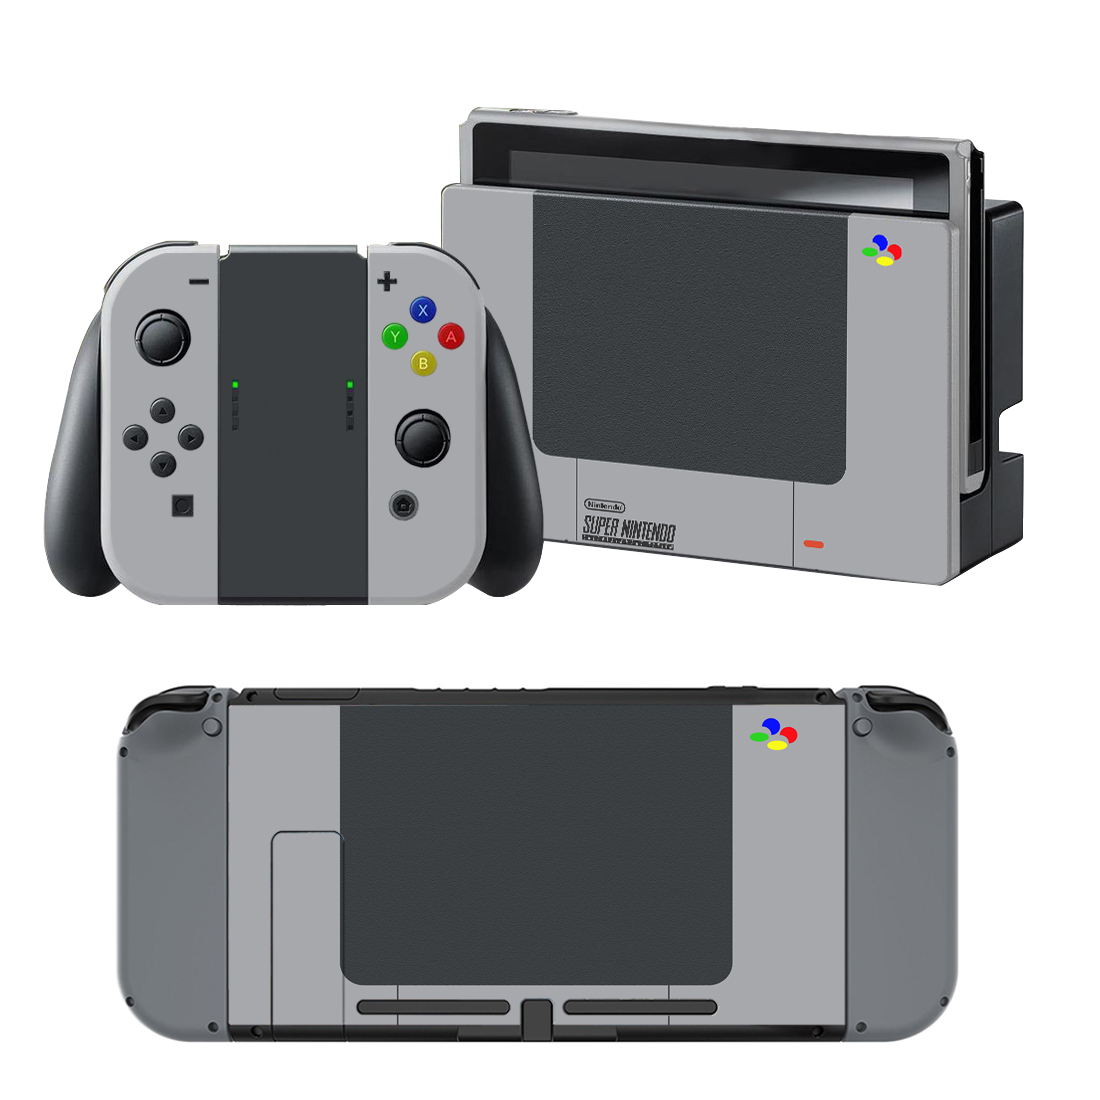 Details about New SUPER Nintendo vinyl decal for Nintendo switch console  sticker skin Stickers